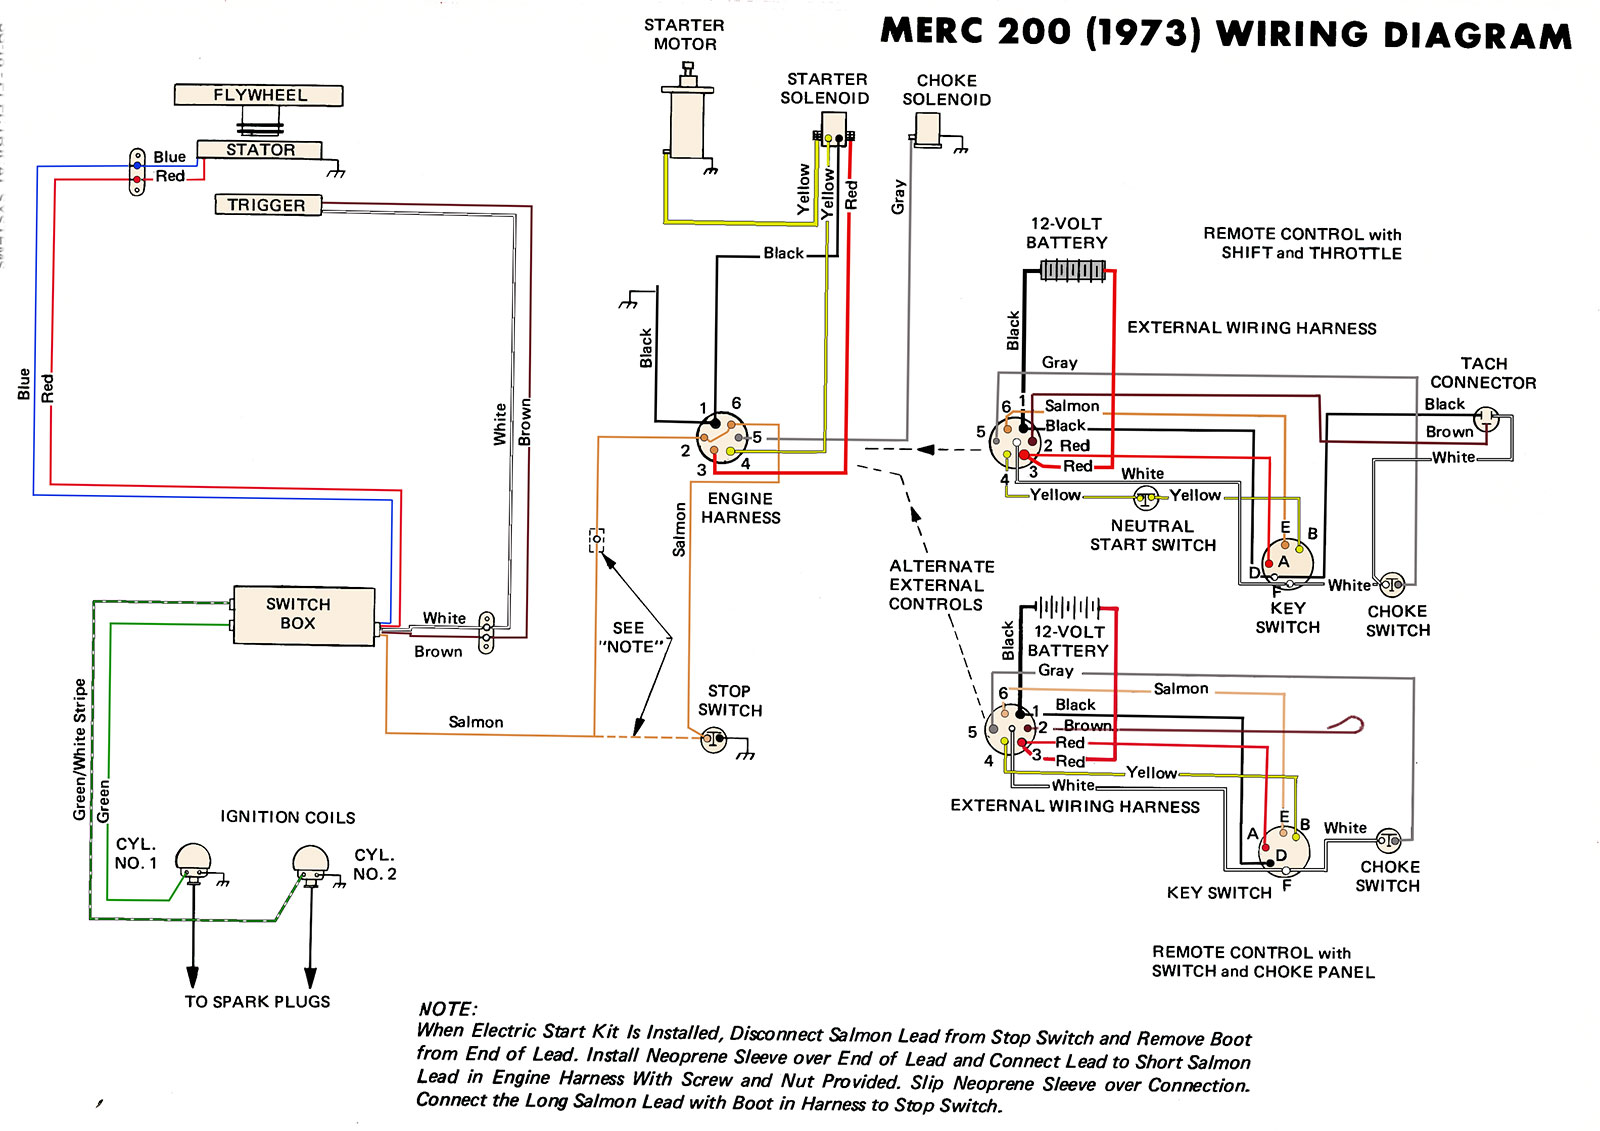 125 hp wiring diagram anything wiring diagram125 hp wiring diagram wiring diagrams hunter wiring diagram 125 [ 1600 x 1131 Pixel ]